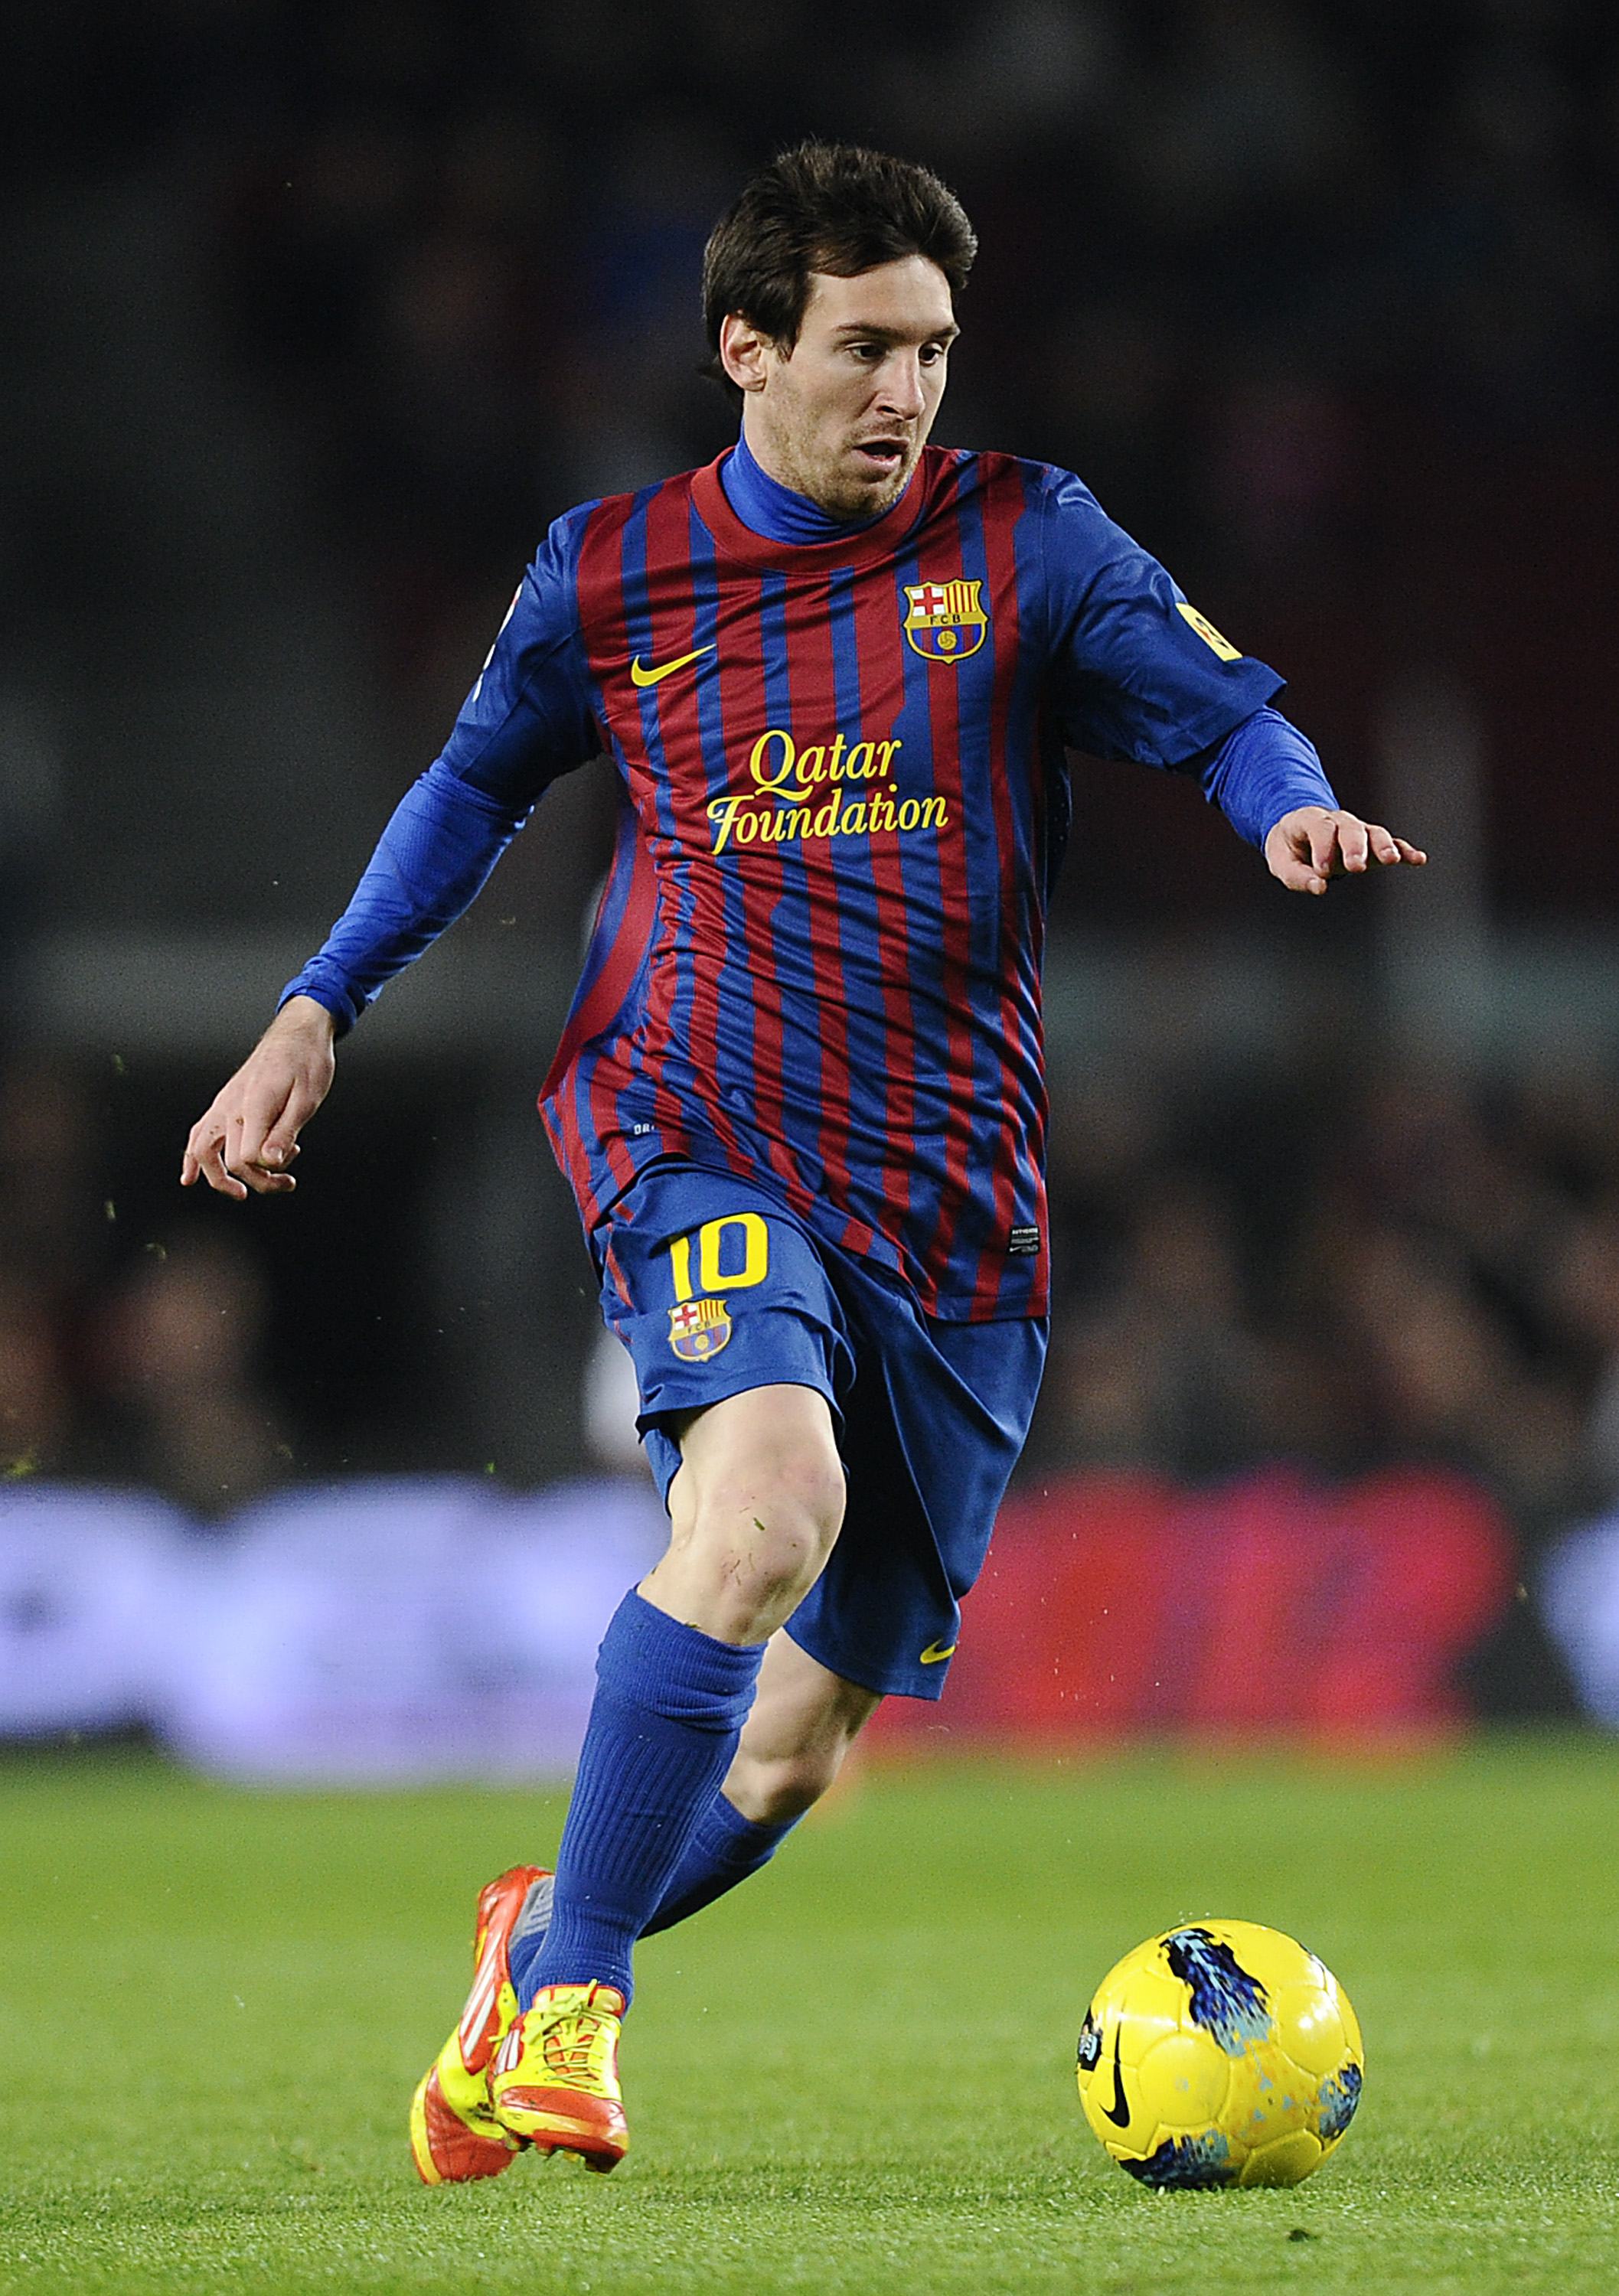 Lionel Messi of FC Barcelona runs with the ball during the La Liga match between FC Barcelona and Rayo Vallecano at Camp Nou on November 29, 2011 in Barcelona, Spain. Barcelona won 4-0. (Photo by David Ramos/Getty Images)